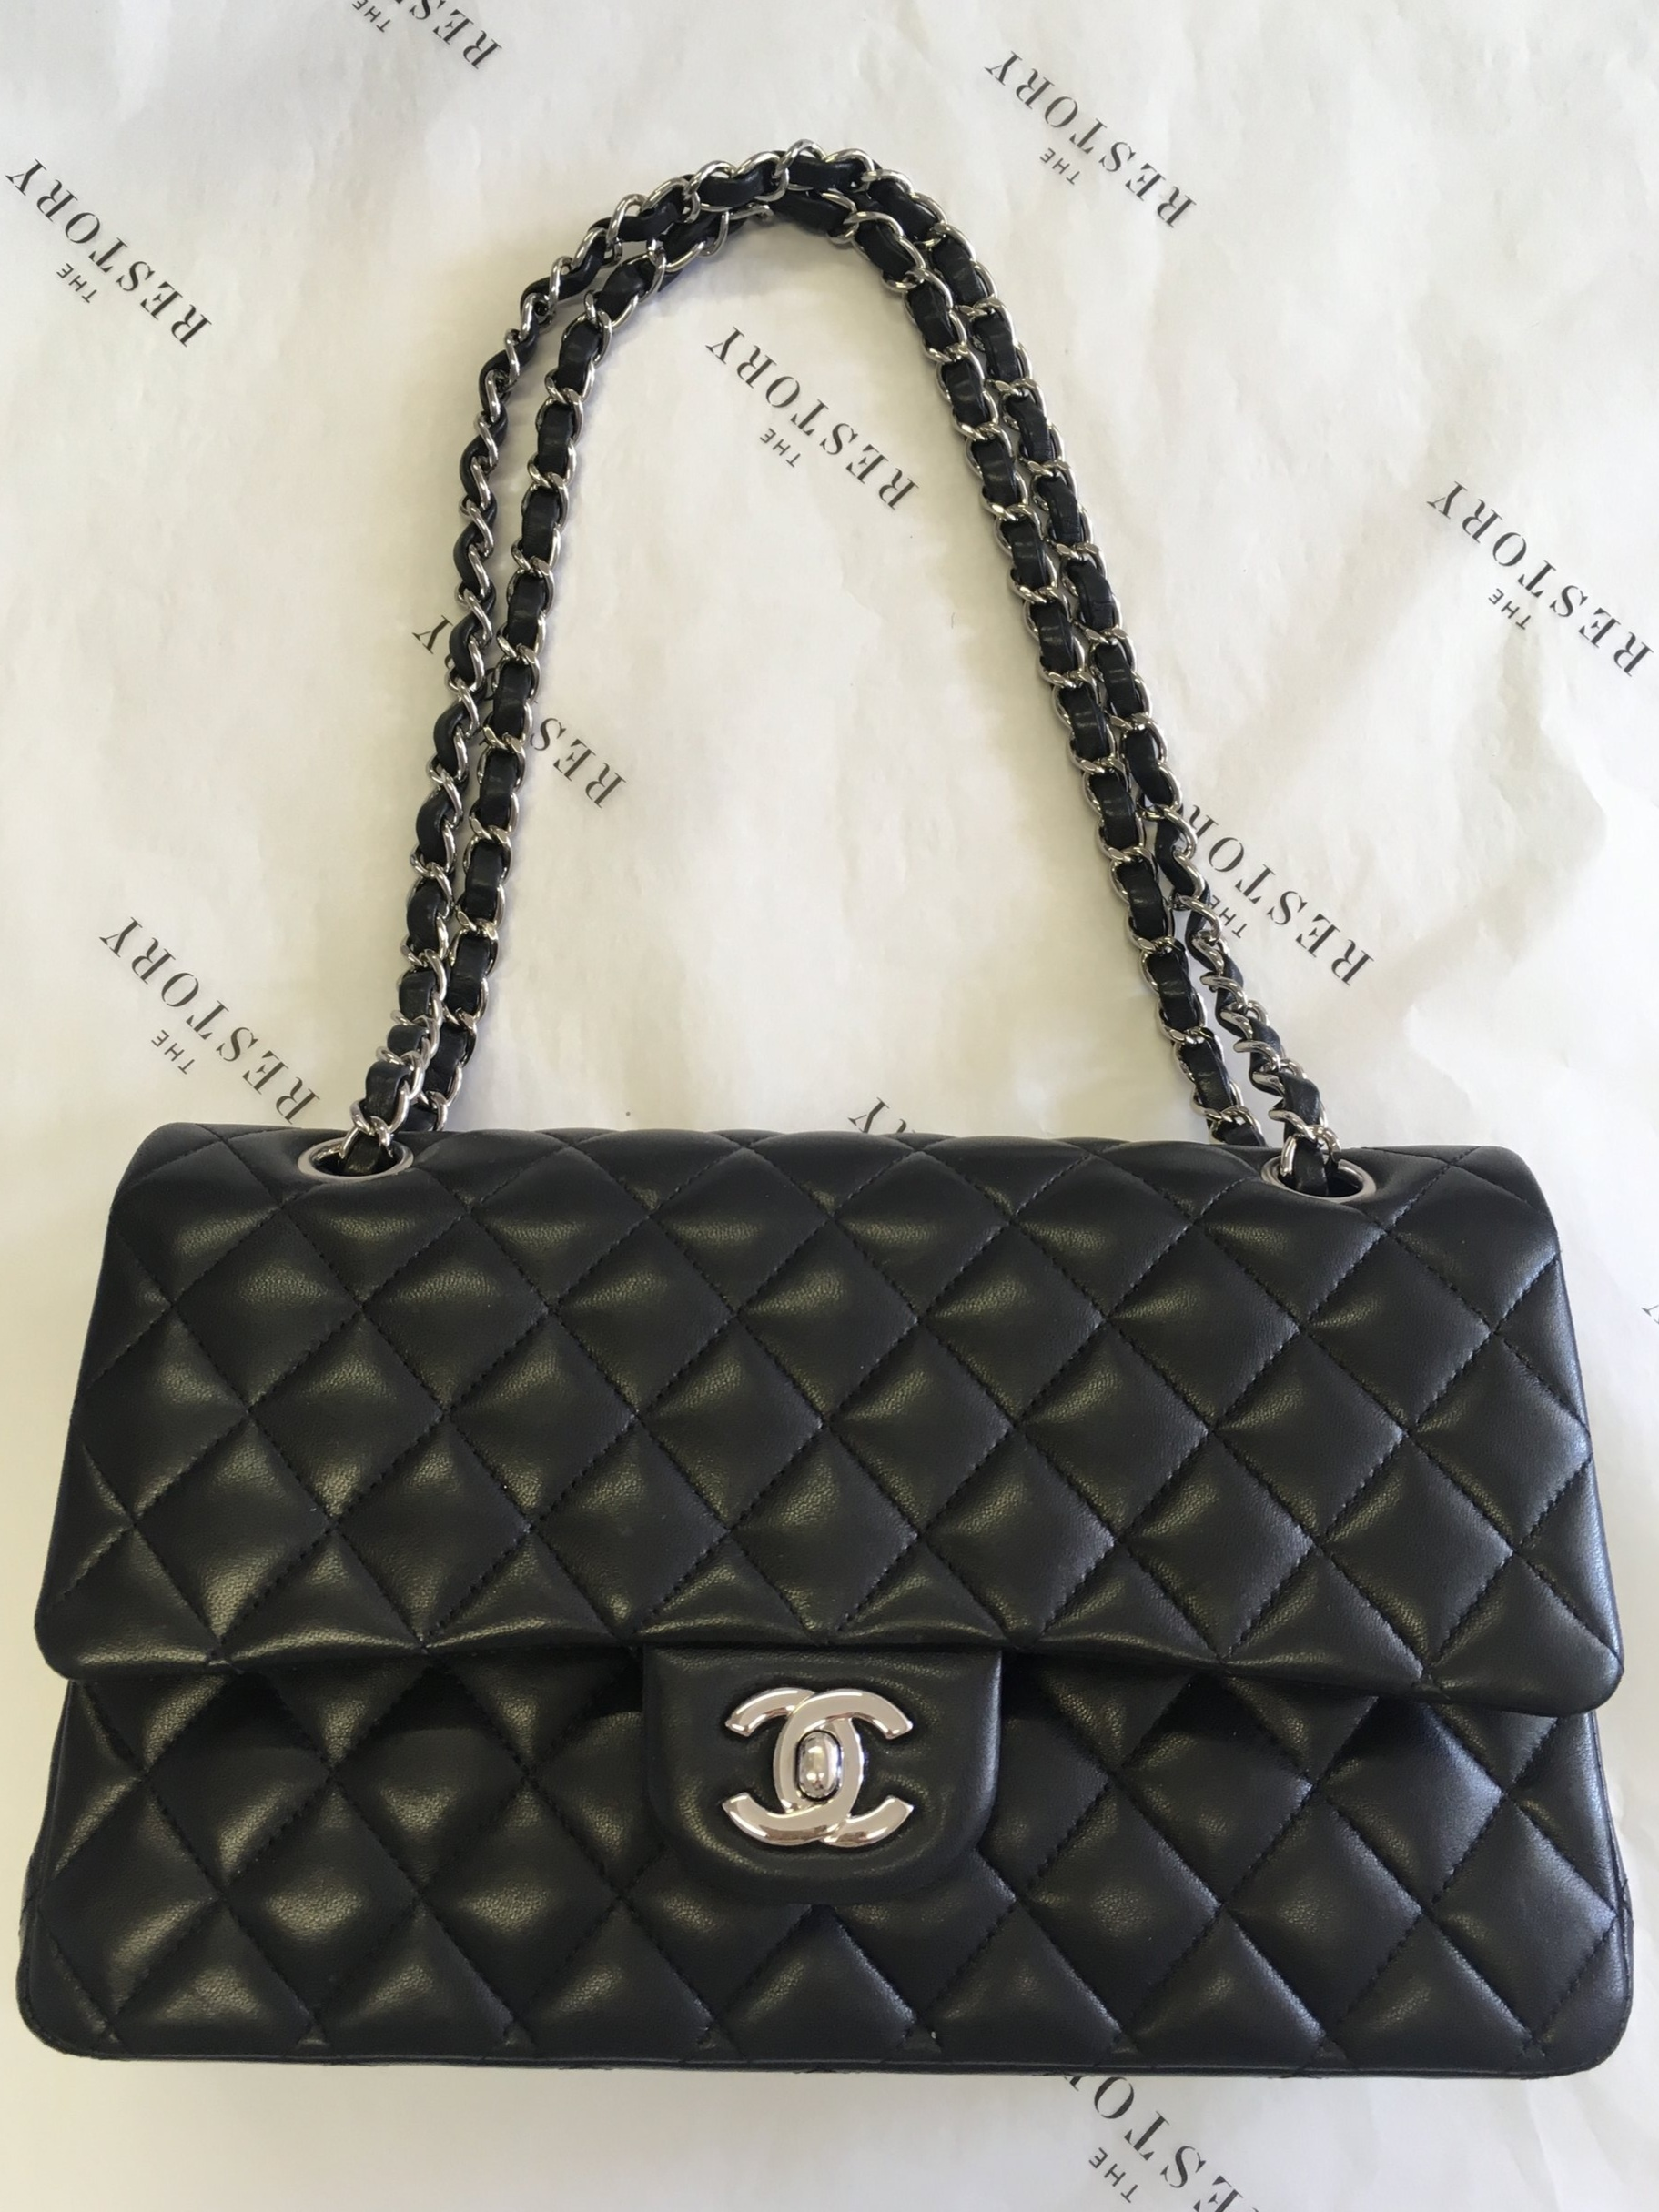 The classic Chanel flap bag